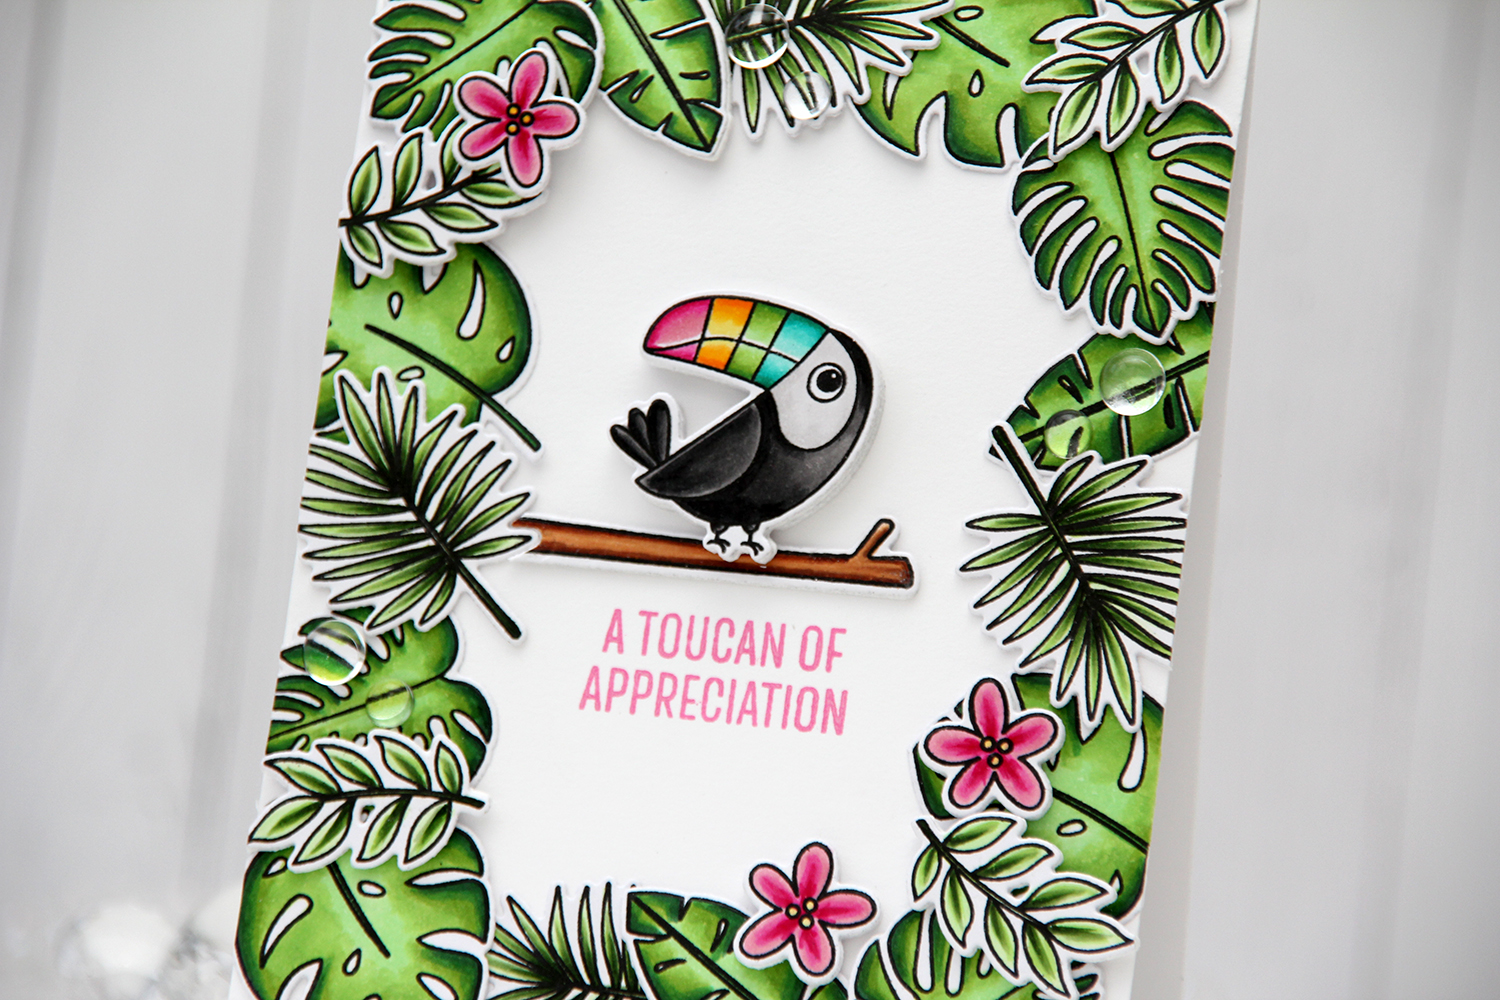 My Favorite Things Something to Squawk About Toucan of Appreciation front skrått header